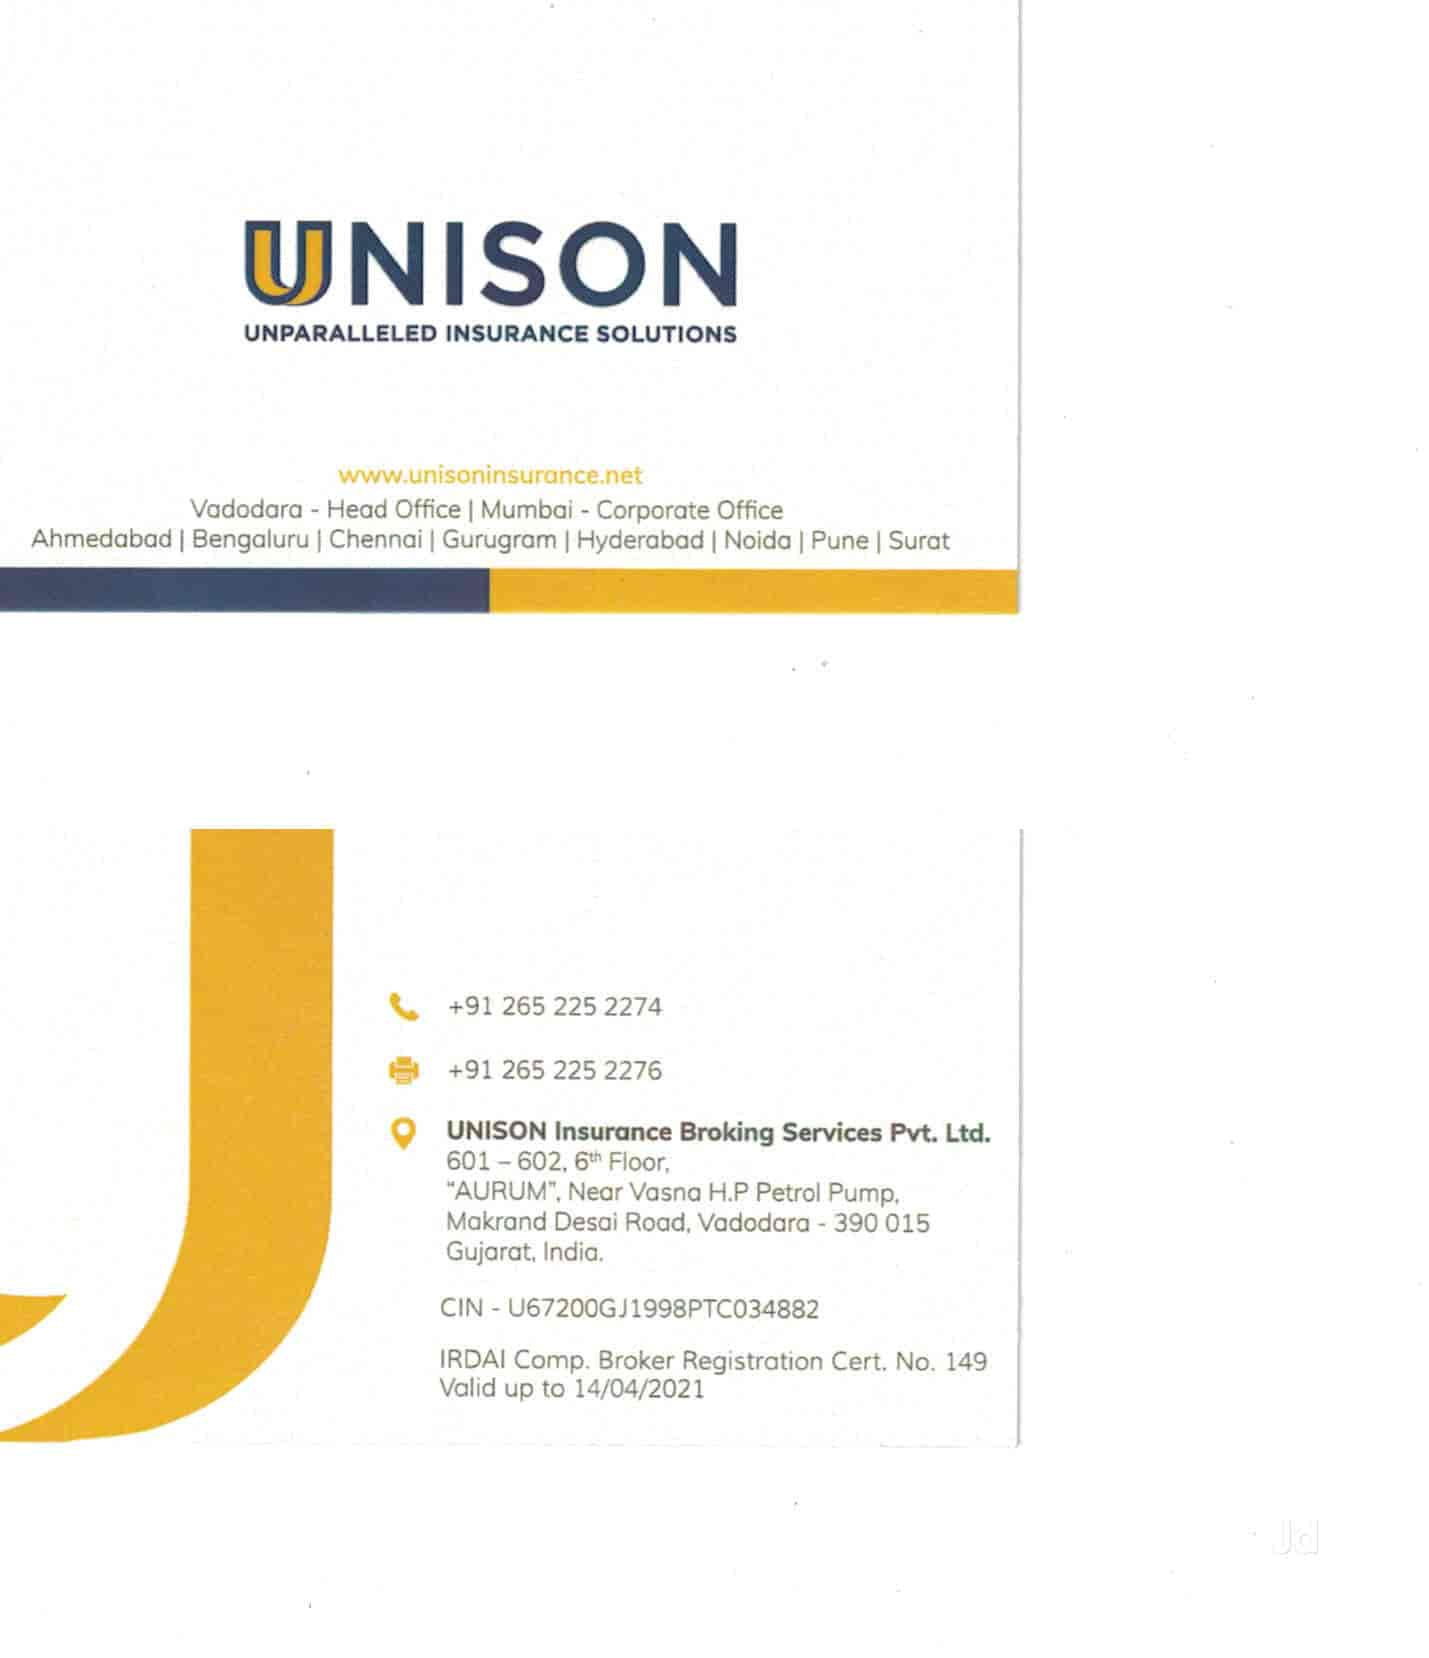 Unison Insurance Broking Services Pvt Ltd, Vasna Road